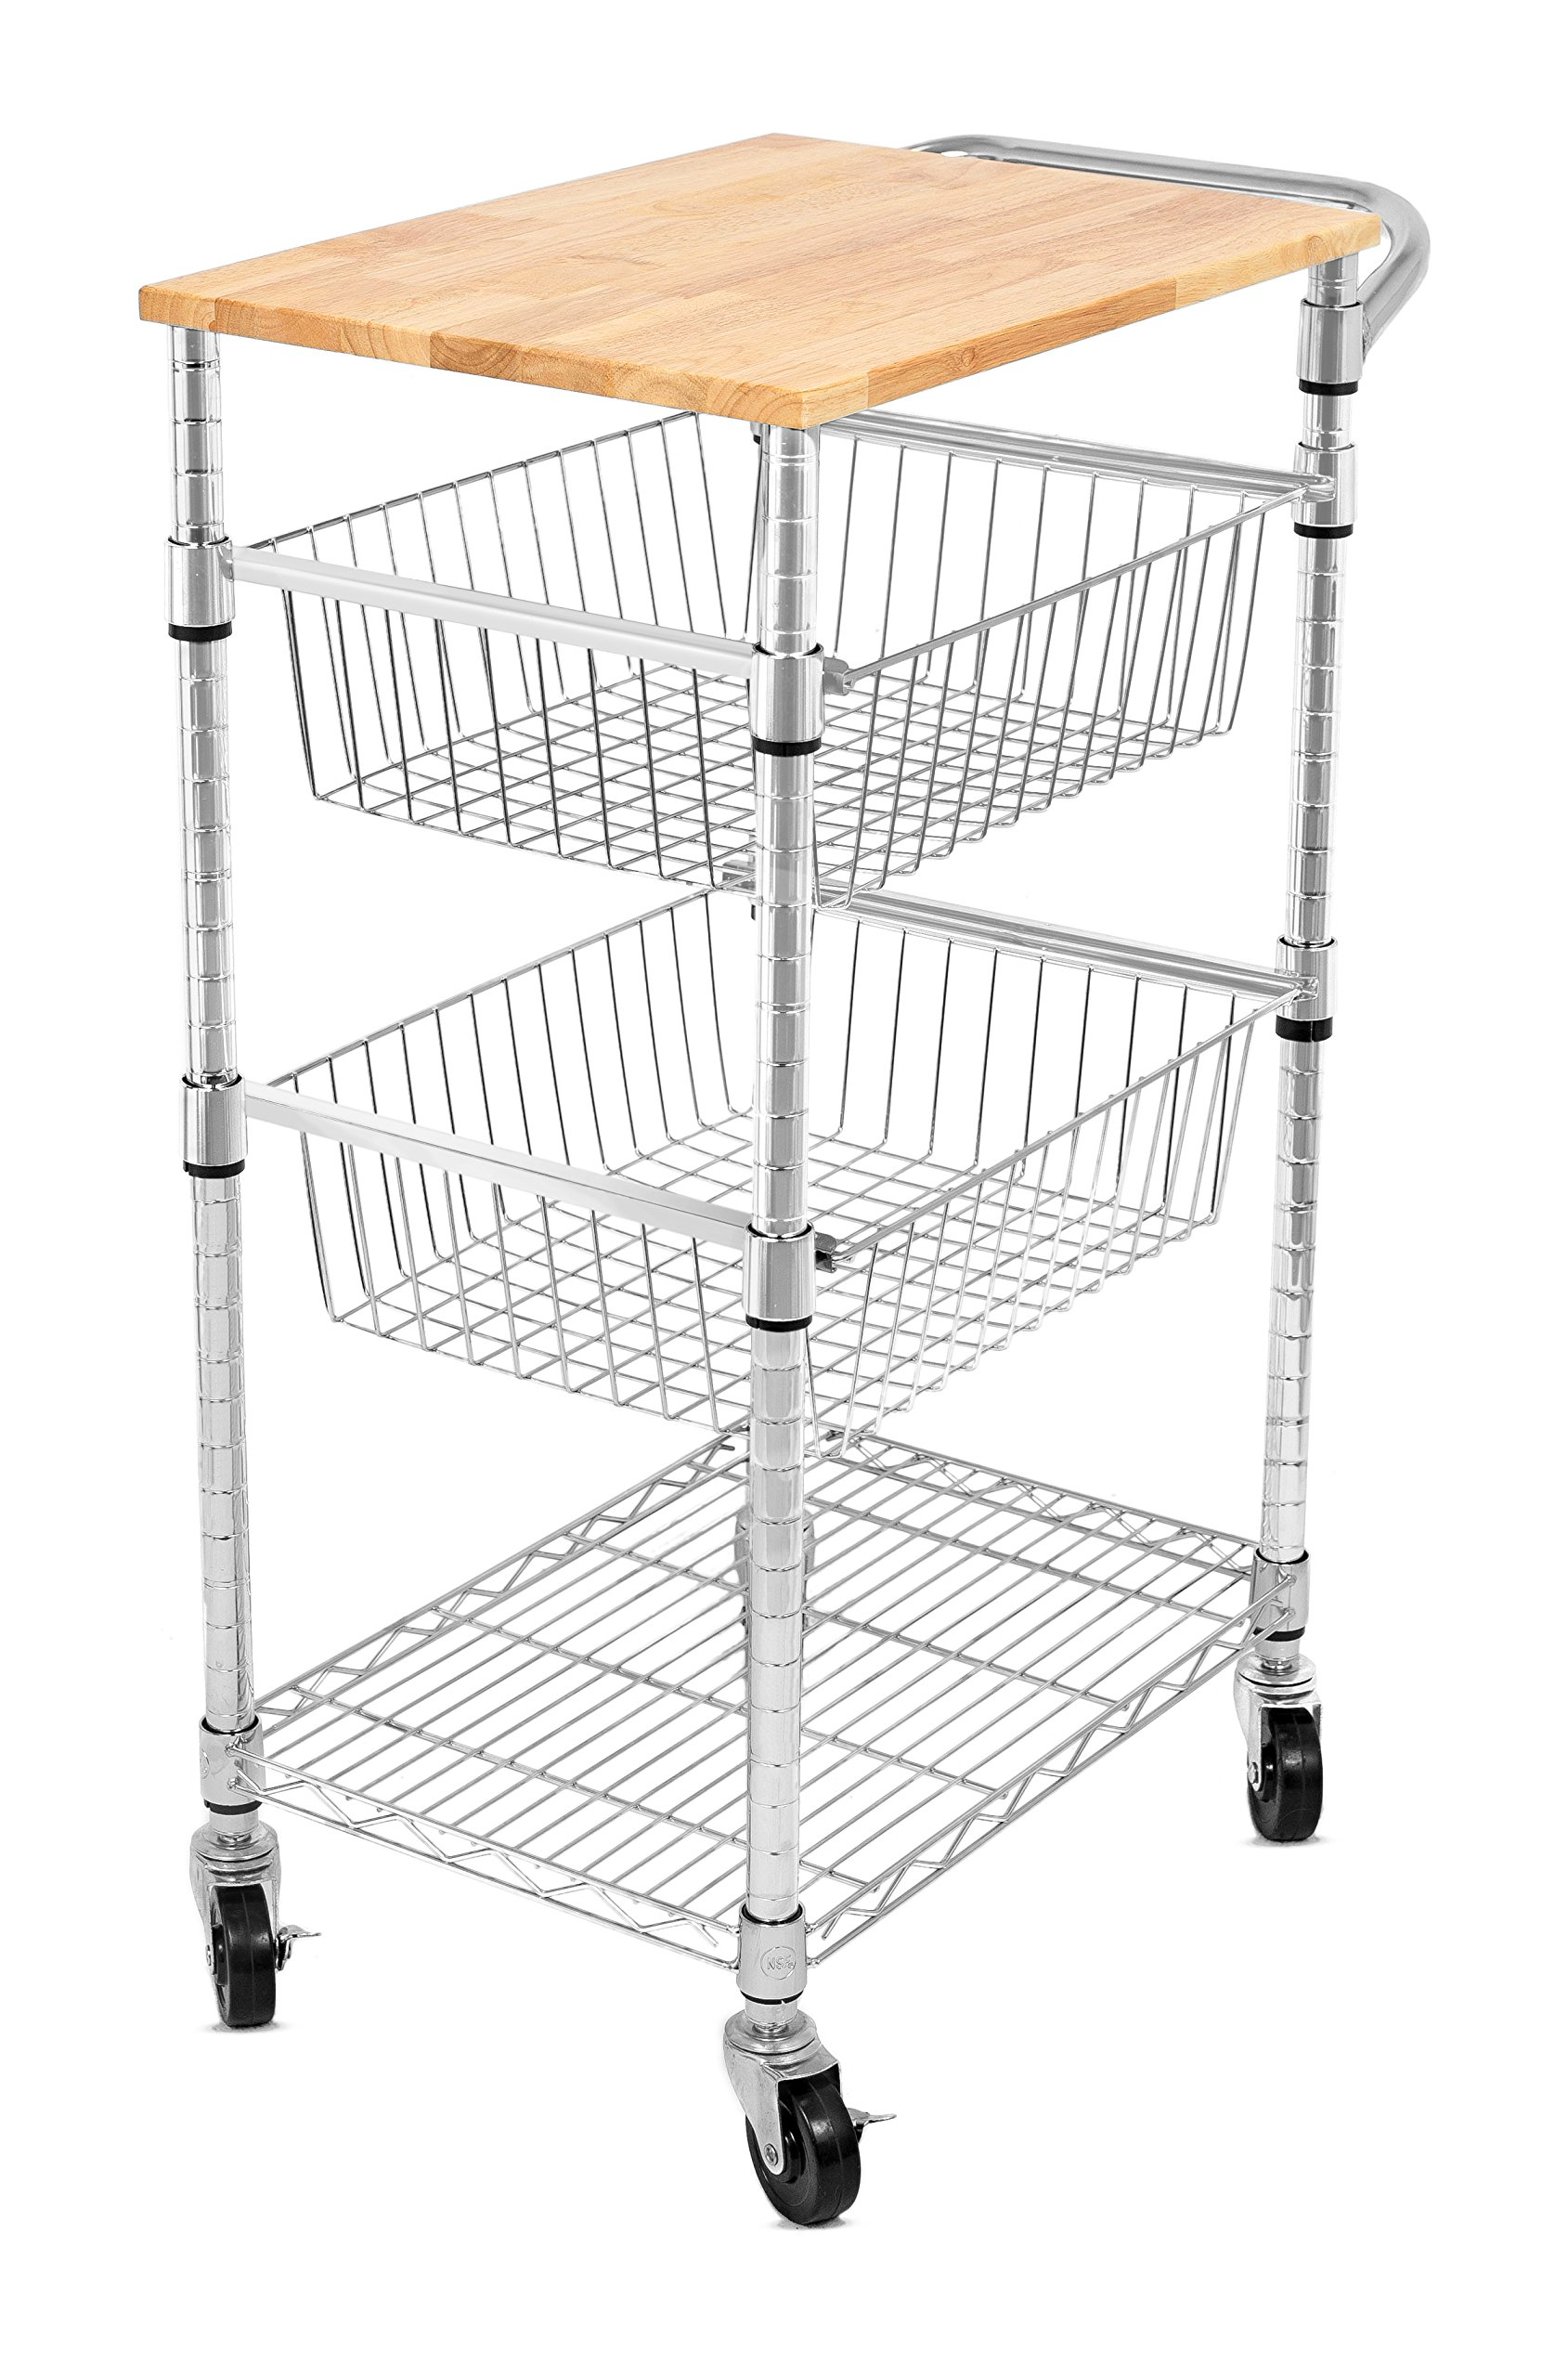 Internet's Best 3-Tier Kitchen Cart with Wire Baskets | Kitchen Island Trolley with Locking Wheels | Removable Cutting Board | 2 Sliding Wire Baskets for Cooking Utensils or Food Storage